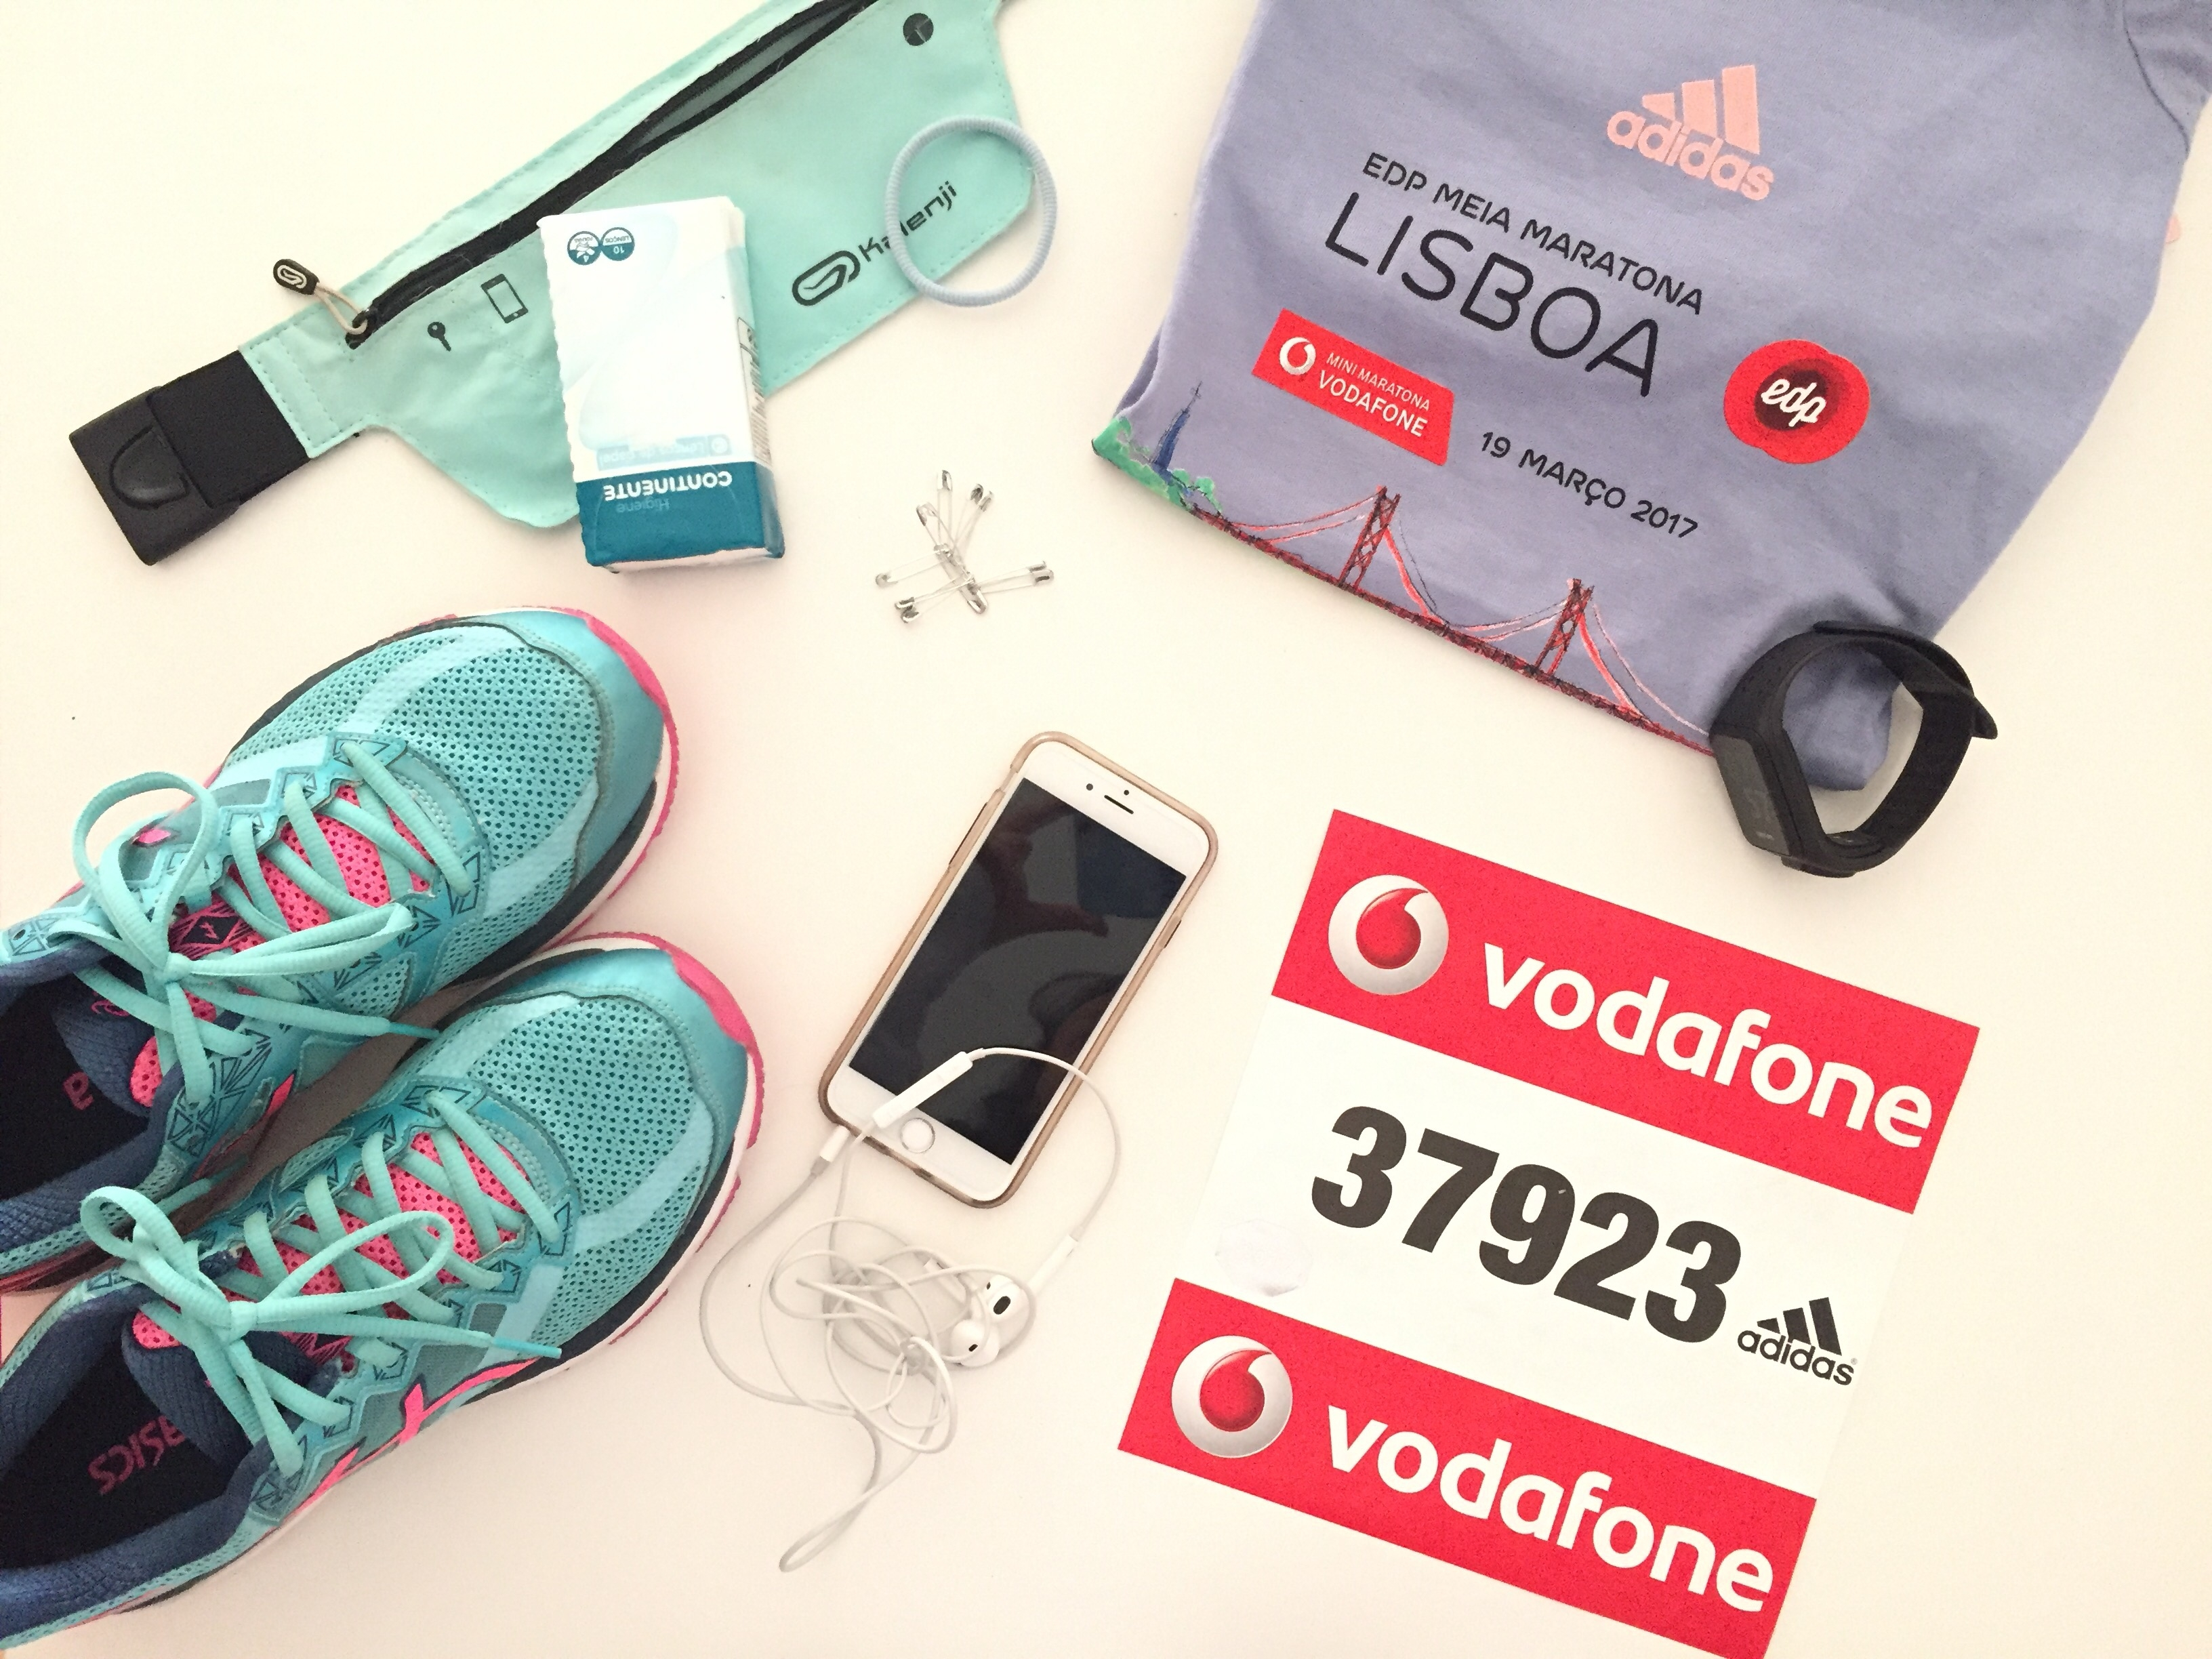 I'm (not) running # 19 Mini maratona vodafone